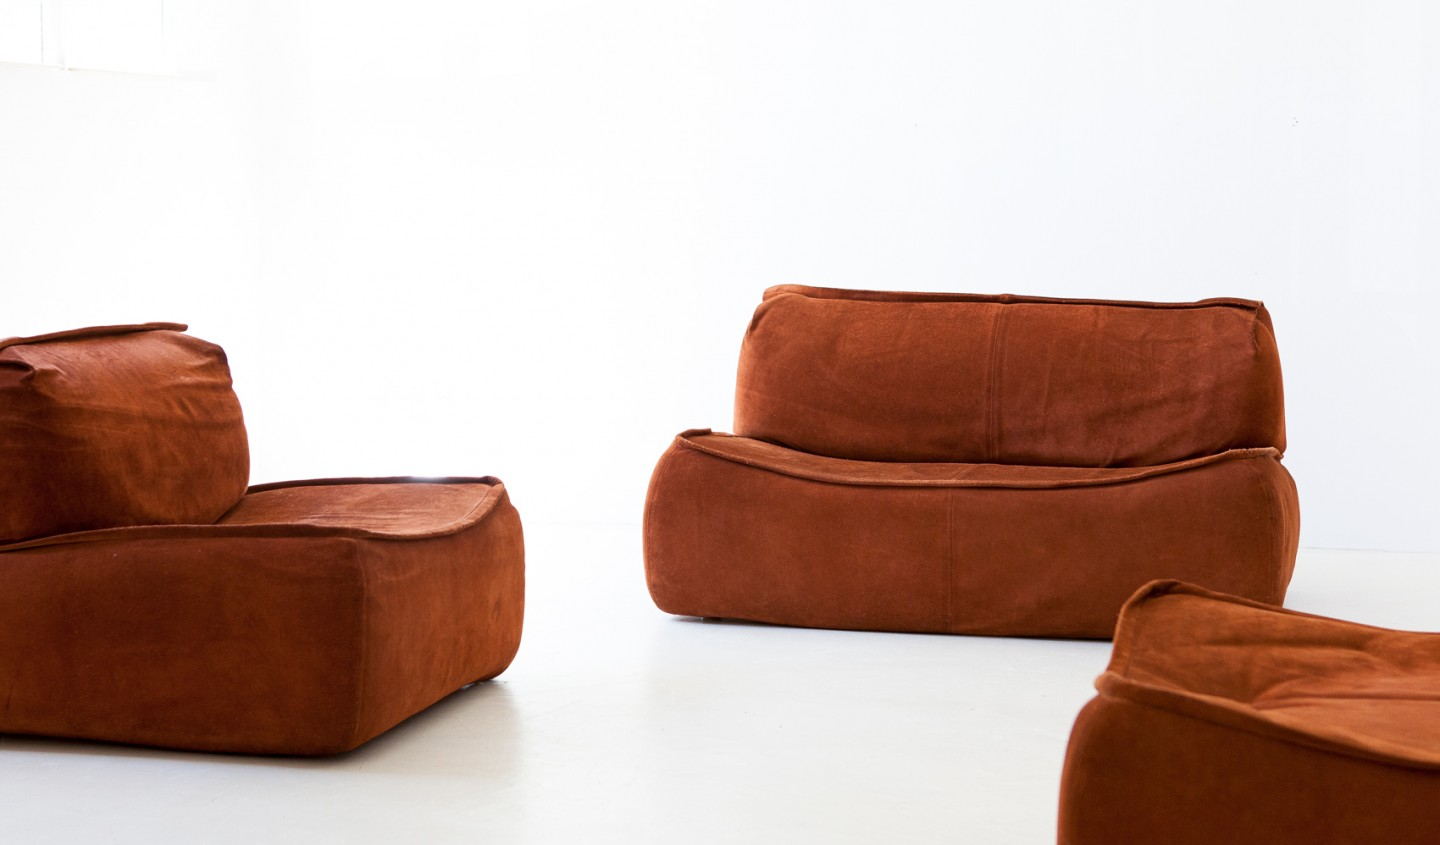 1970s congnac suede leather sofa by Arcon Italia SE330 – No longer available..